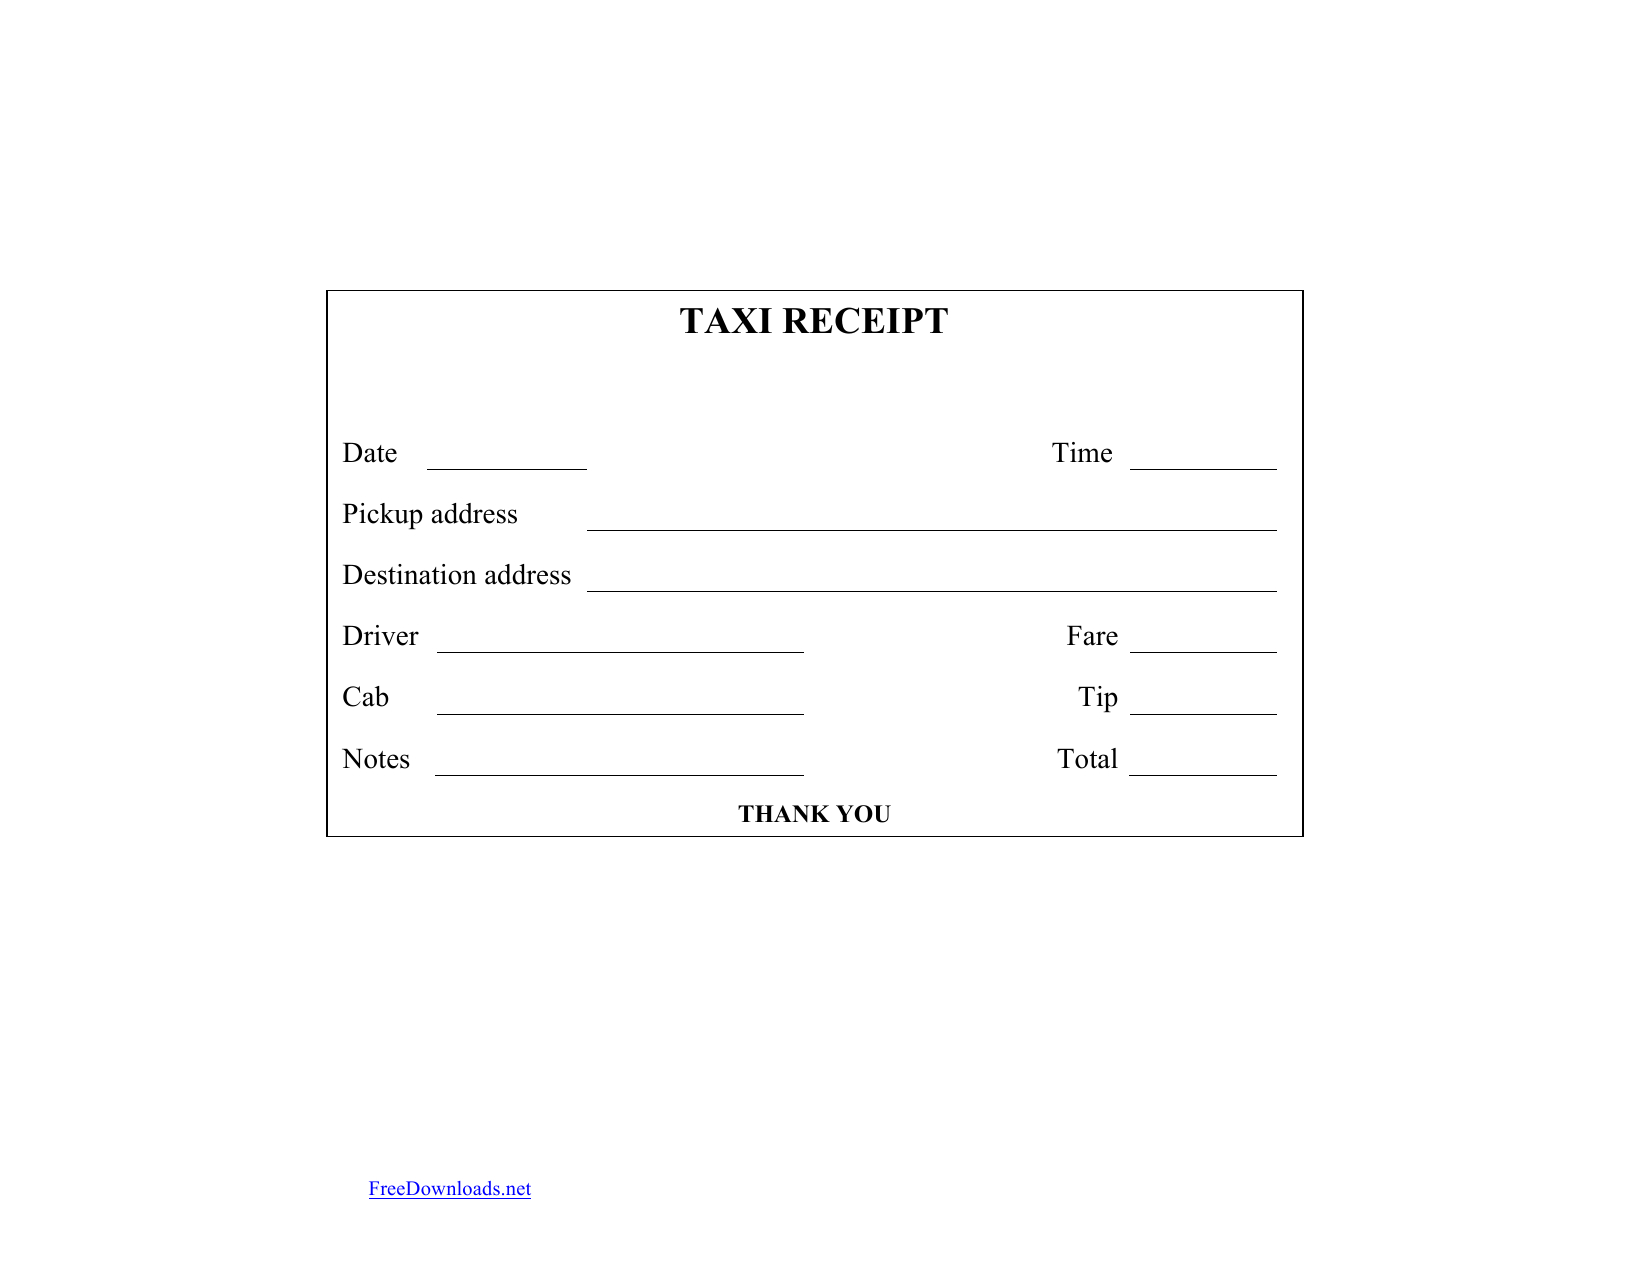 Taxi Cab Receipts Printable - Tutlin.psstech.co - Www Hooverwebdesign Com Free Printables Printable Receipts